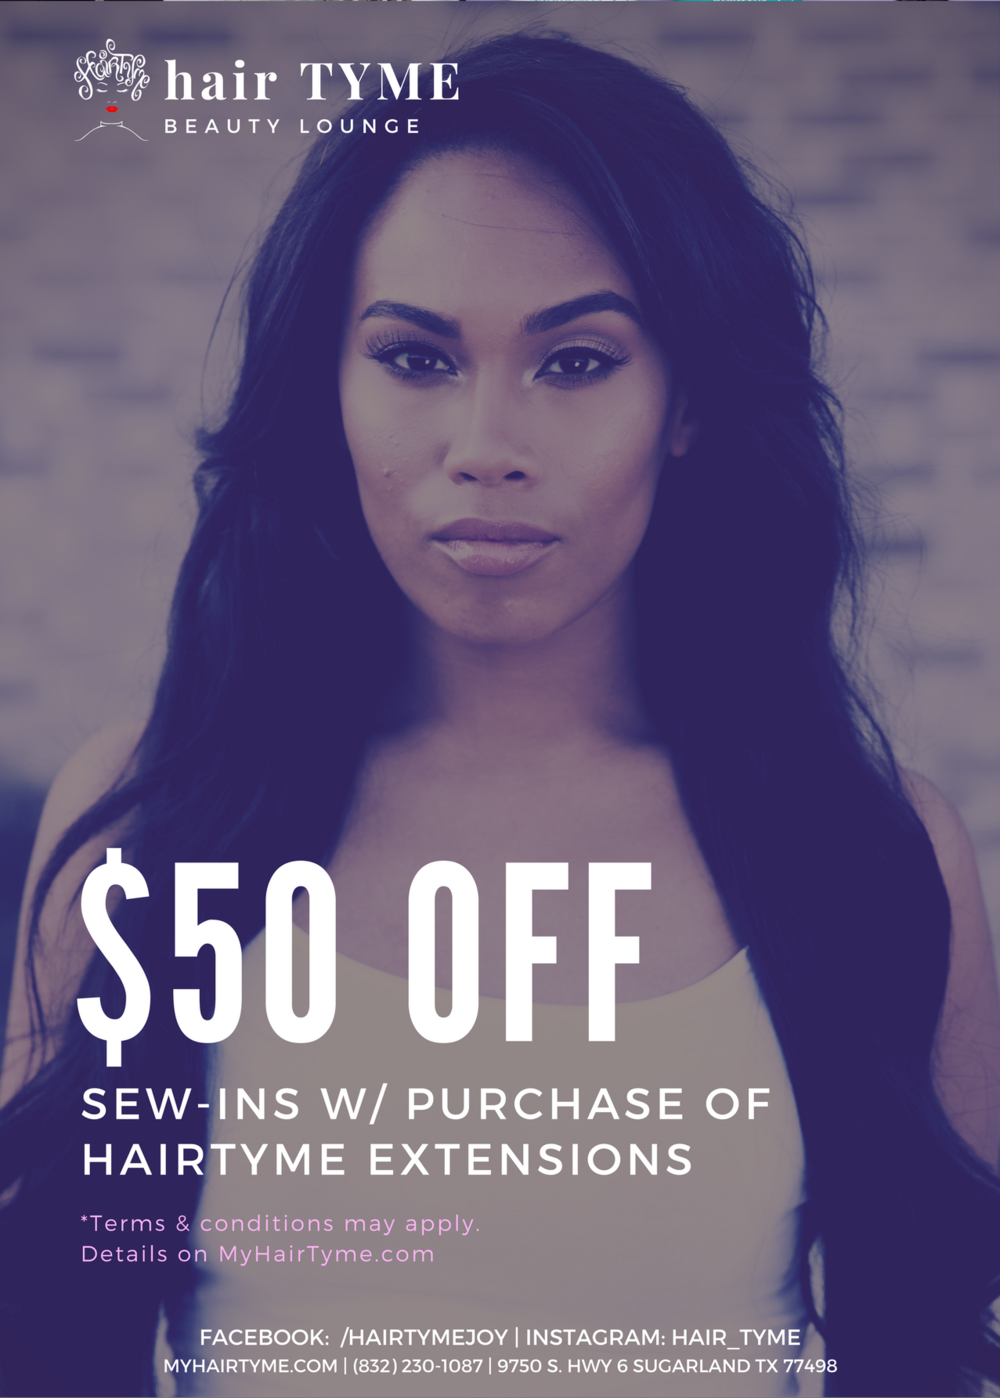 $50 Off - Sew-ins with a purchase of 3 or more bundles of HairTYME Extensions (or 2 bundles and a closure). Offer Valid Every Tuesday & Wednesday Starting June 1 - August 1 2017.*Only valid with Joyce Tuesday & Wednesday; appointments made outside of these days will be charged full price. A non-refundable deposit required to book.